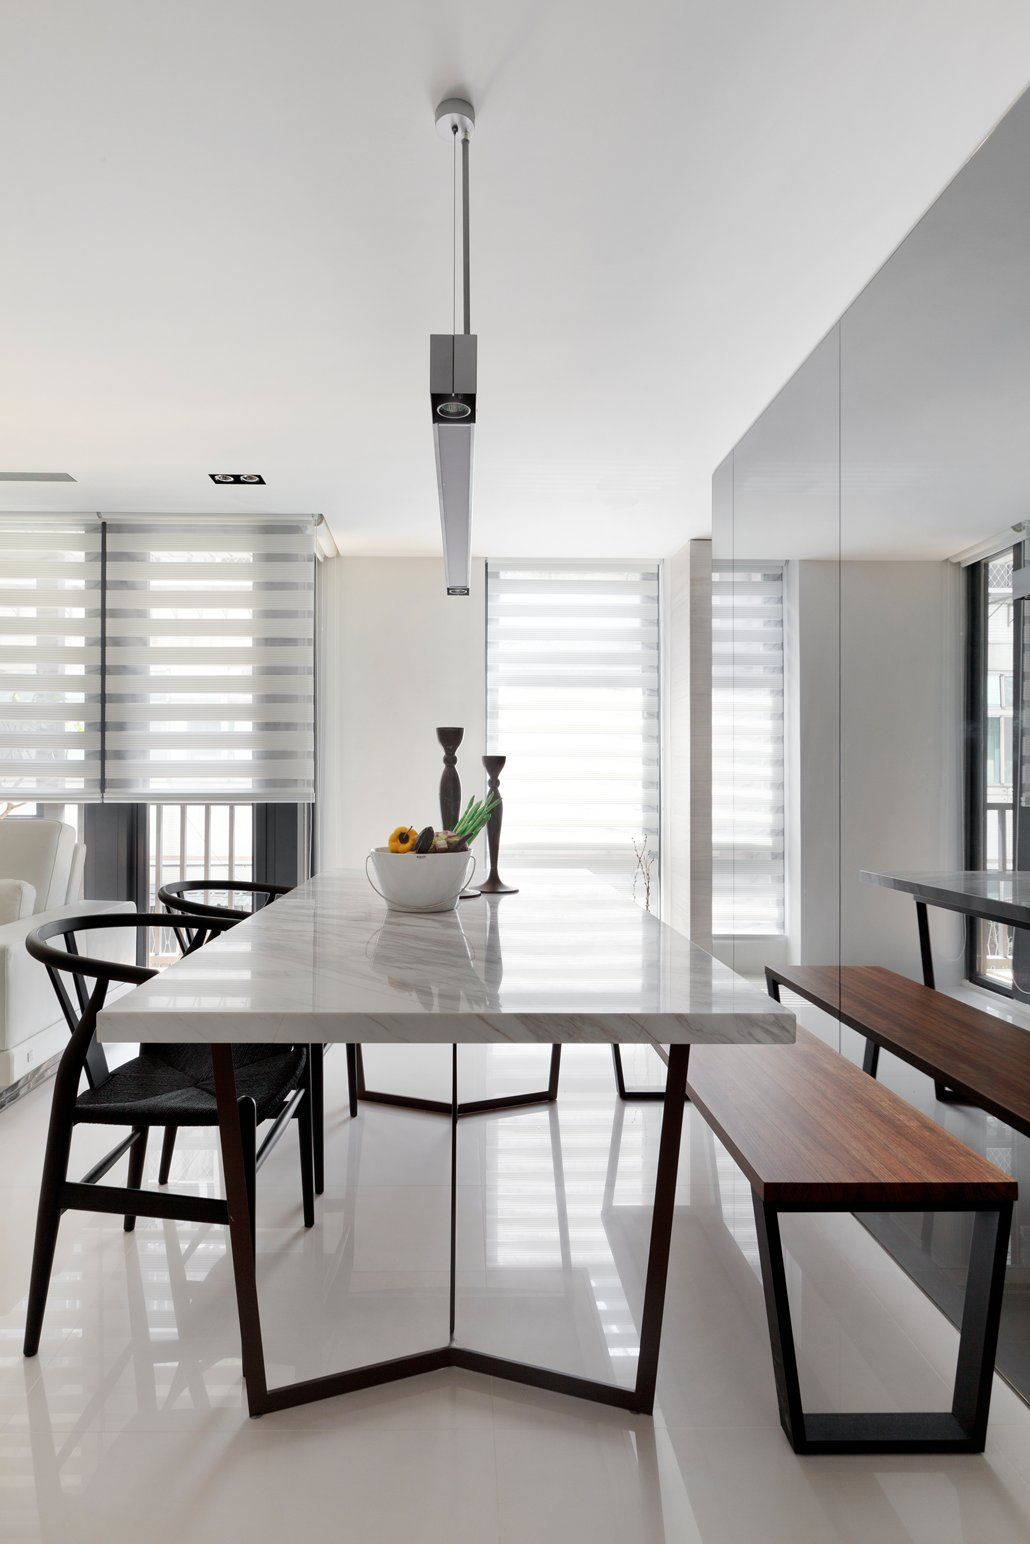 Bright Residence Chang By Atelierii 5 Minimalist Dining Room